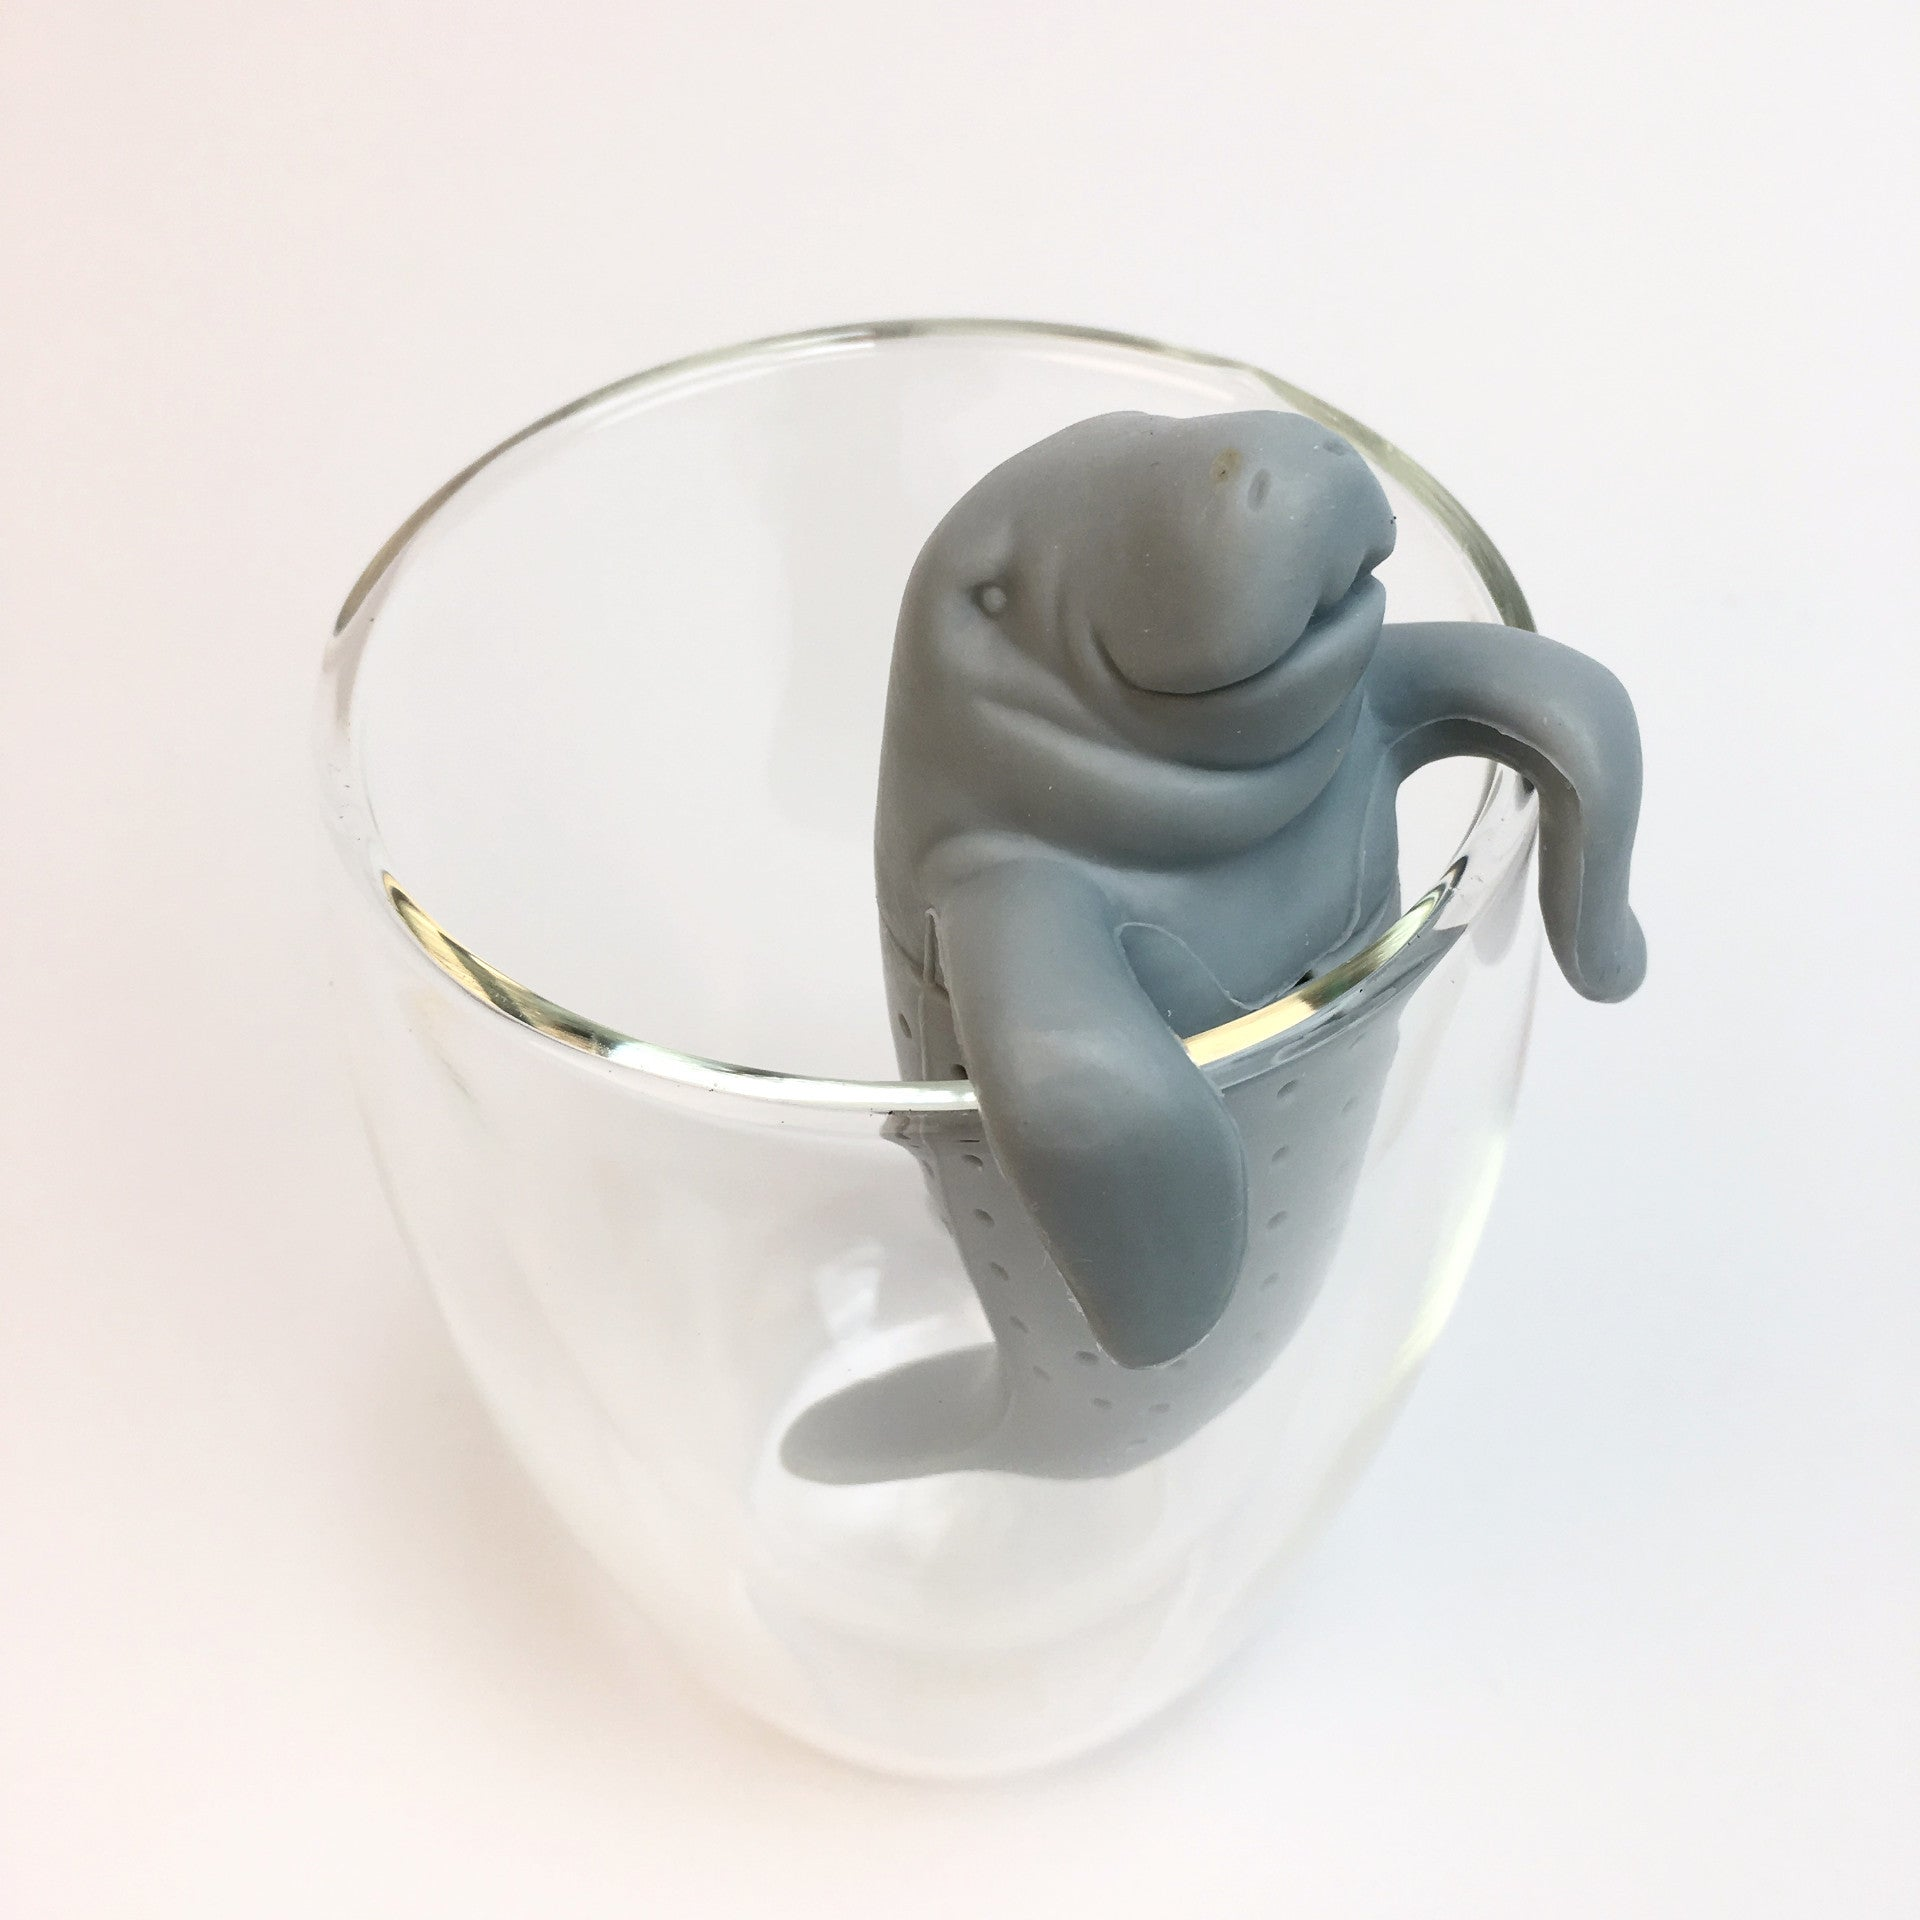 IS Manatea Tea Infuser